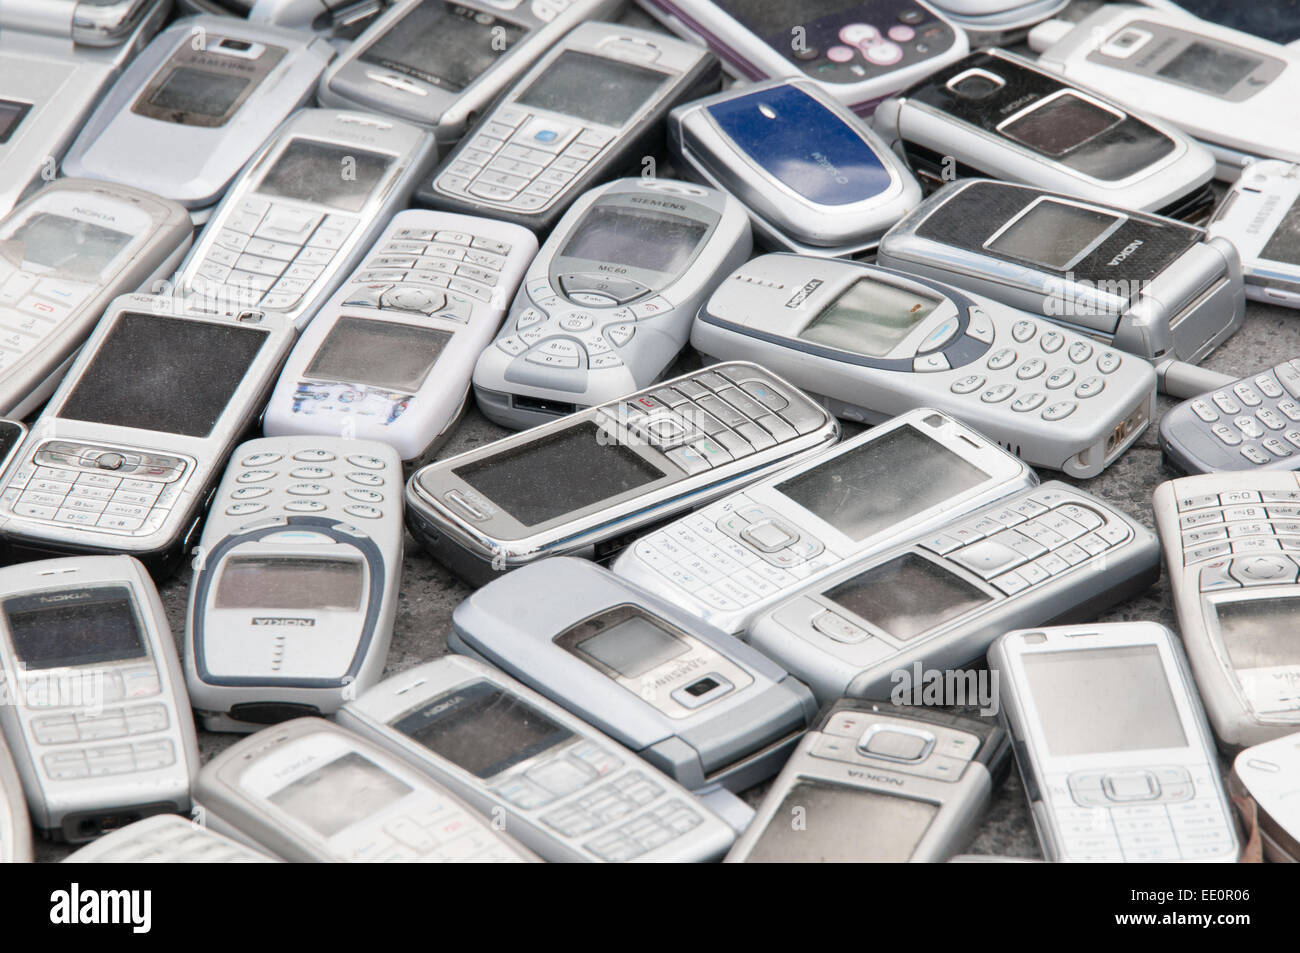 Discarded mobile phones - Stock Image